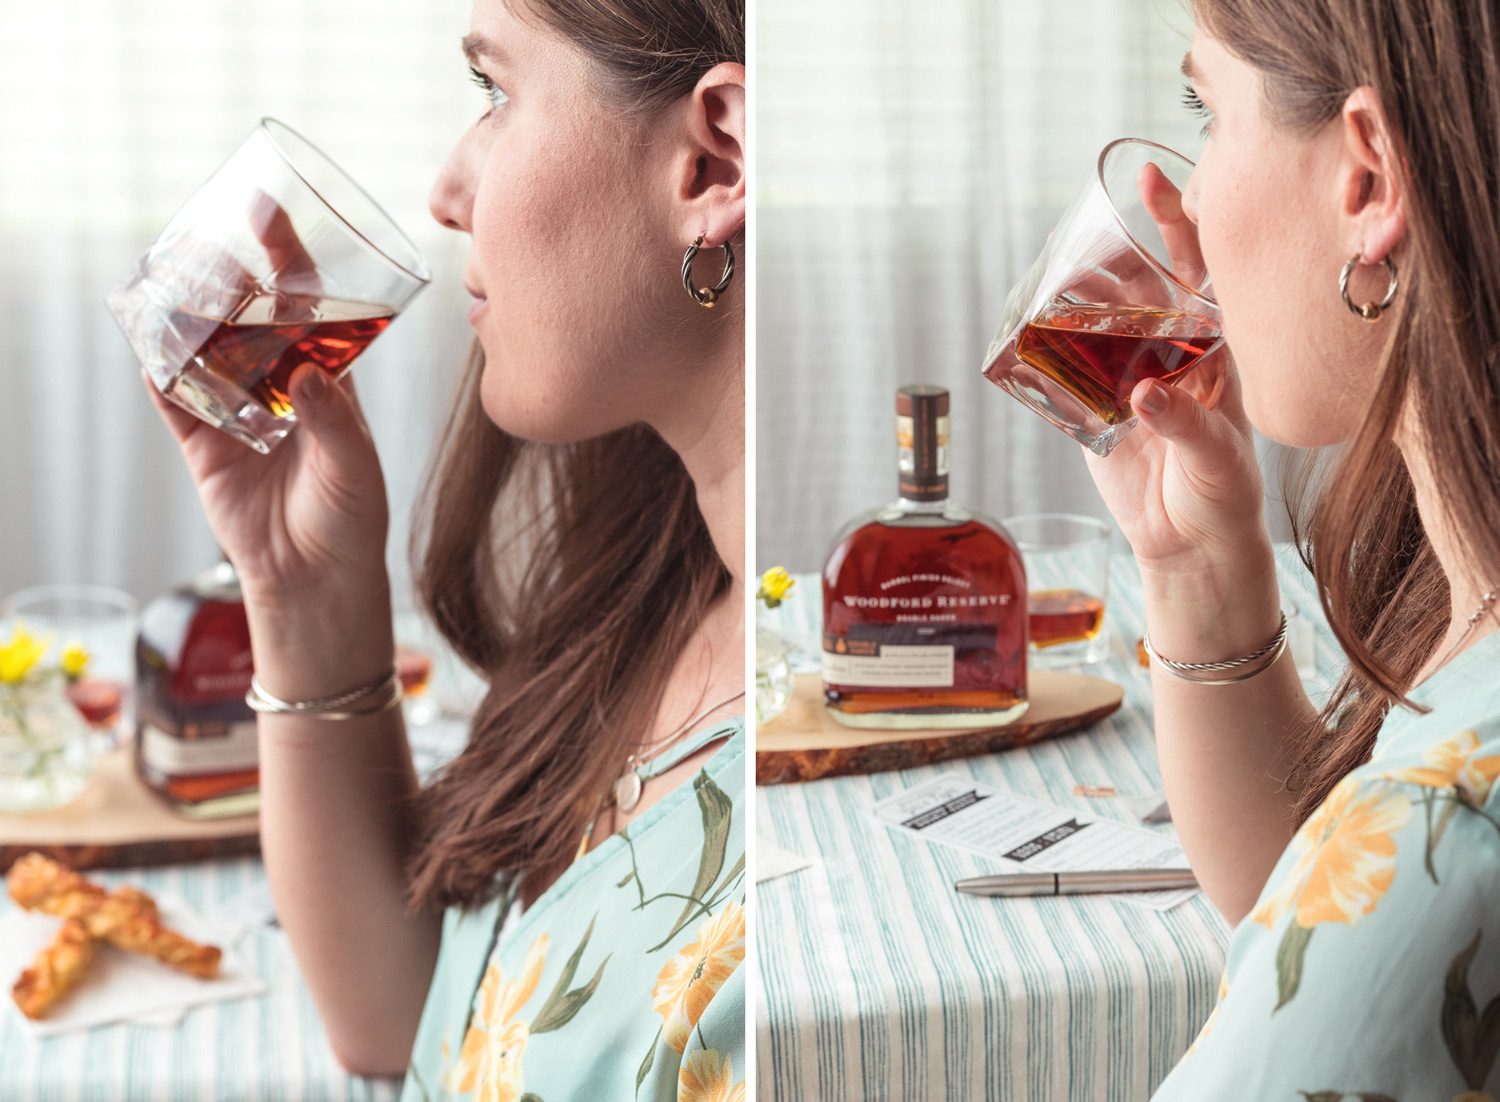 Bourbon Gal's Night Idea with Woodford Reserve! Throw a bourbon themed Girl's Night and to learn more about bourbon with bourbon food pairings (Dark Chocolate Almond and Ginger Bark & 3 Cheese Pretzel Twist), bourbon fact sheets, and bourbon tasting. Free Printable included with this entertaining ideas! #sponsored #ElleTalk #Bourbon #WoodfordReserve #GirlsNight #EntertainingIdeas